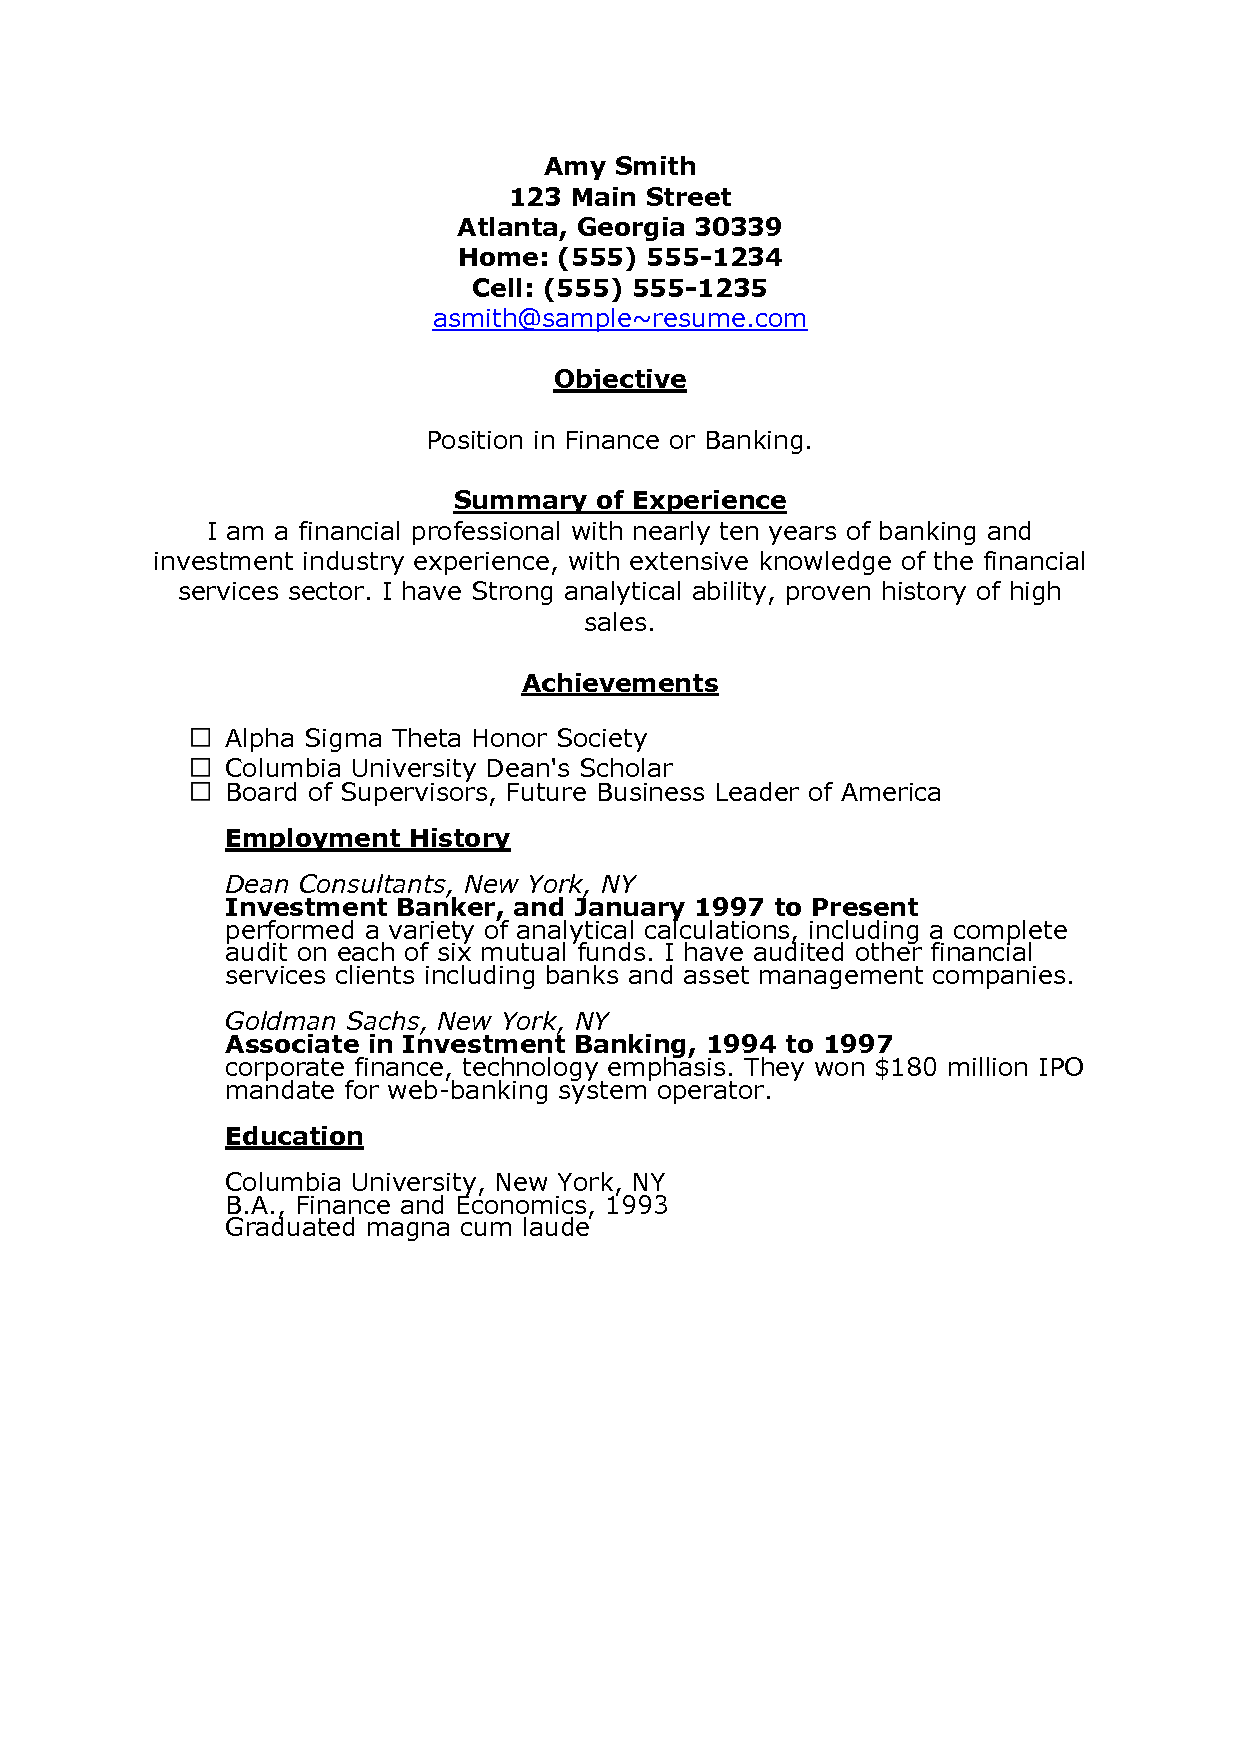 Bad Resume Writing Examples Millennium Focus Job Resumes Template